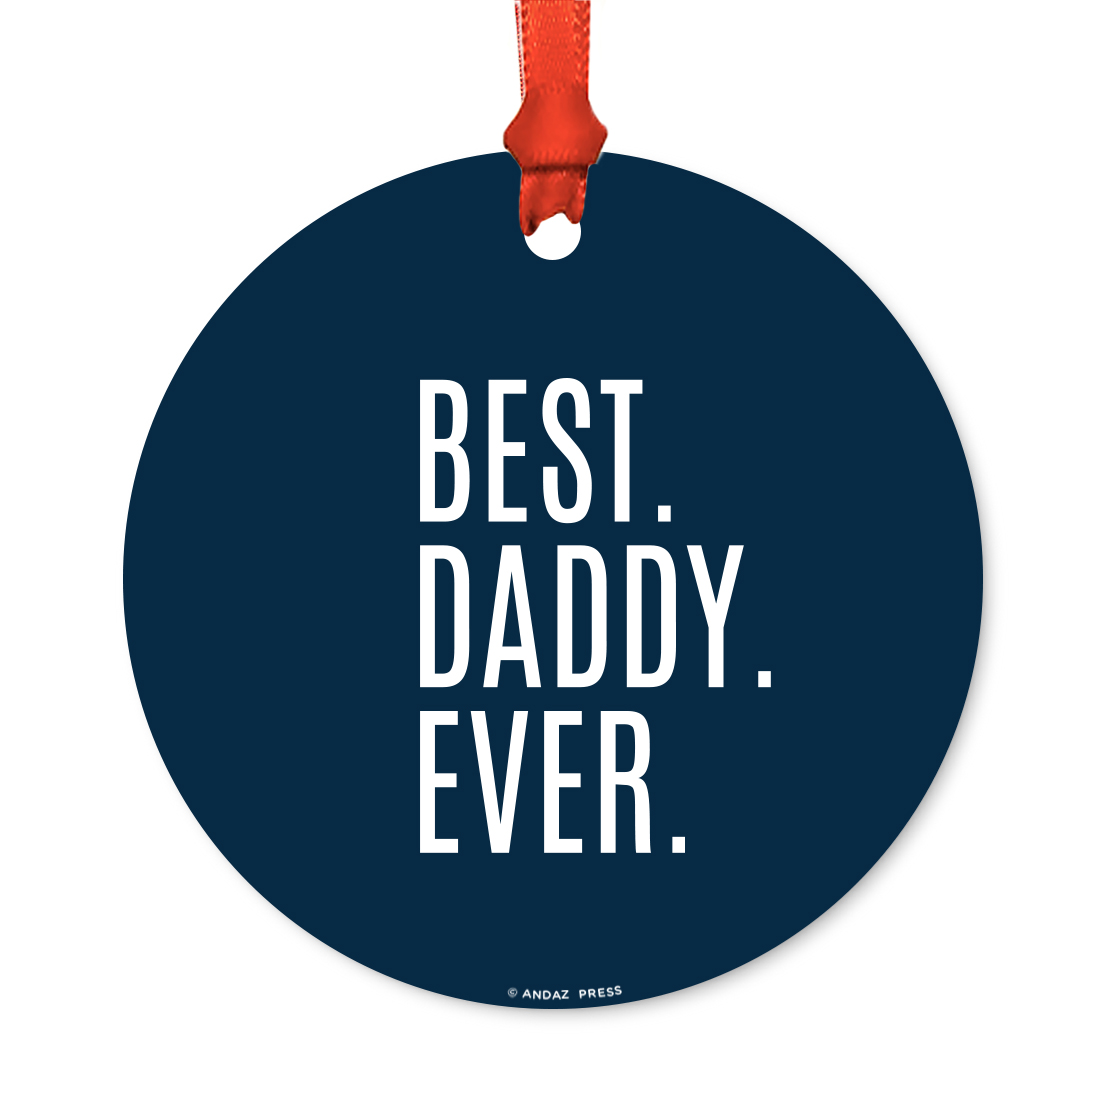 Round Metal Christmas Ornament, Best Dad Ever, Includes Ribbon and Gift Bag, Father's Day Birthday Present Gift Ideas